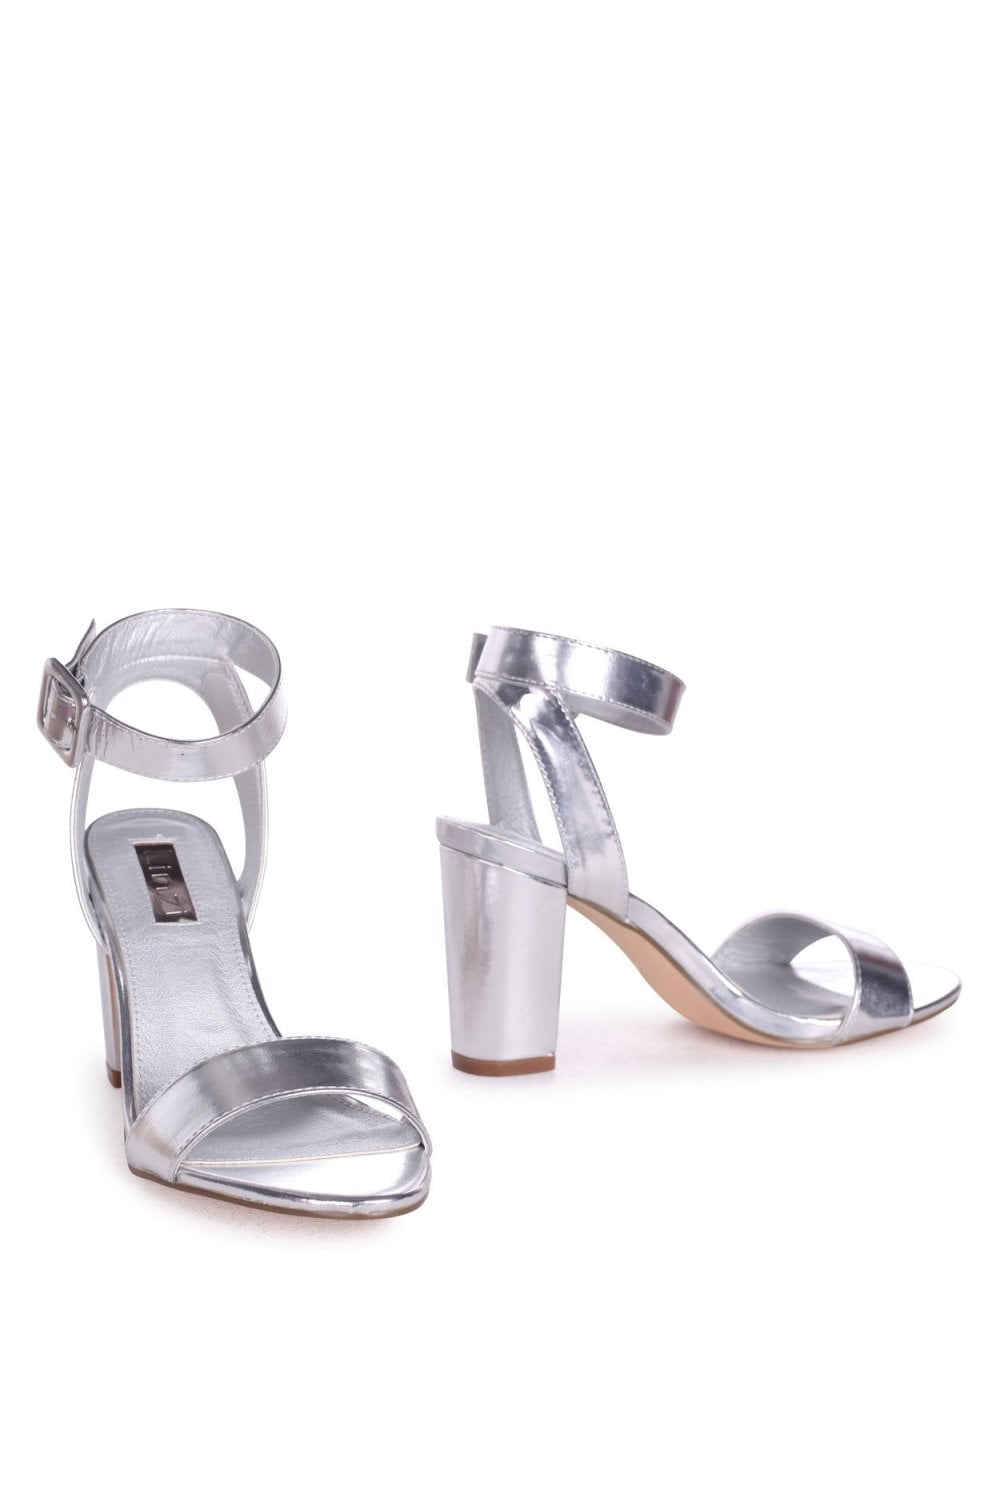 c01e1c01c50 Linzi Millie Silver Metallic Open Toe Block Heels With Ankle Strap And Buckle  Detail - Linzi from Little Mistress UK